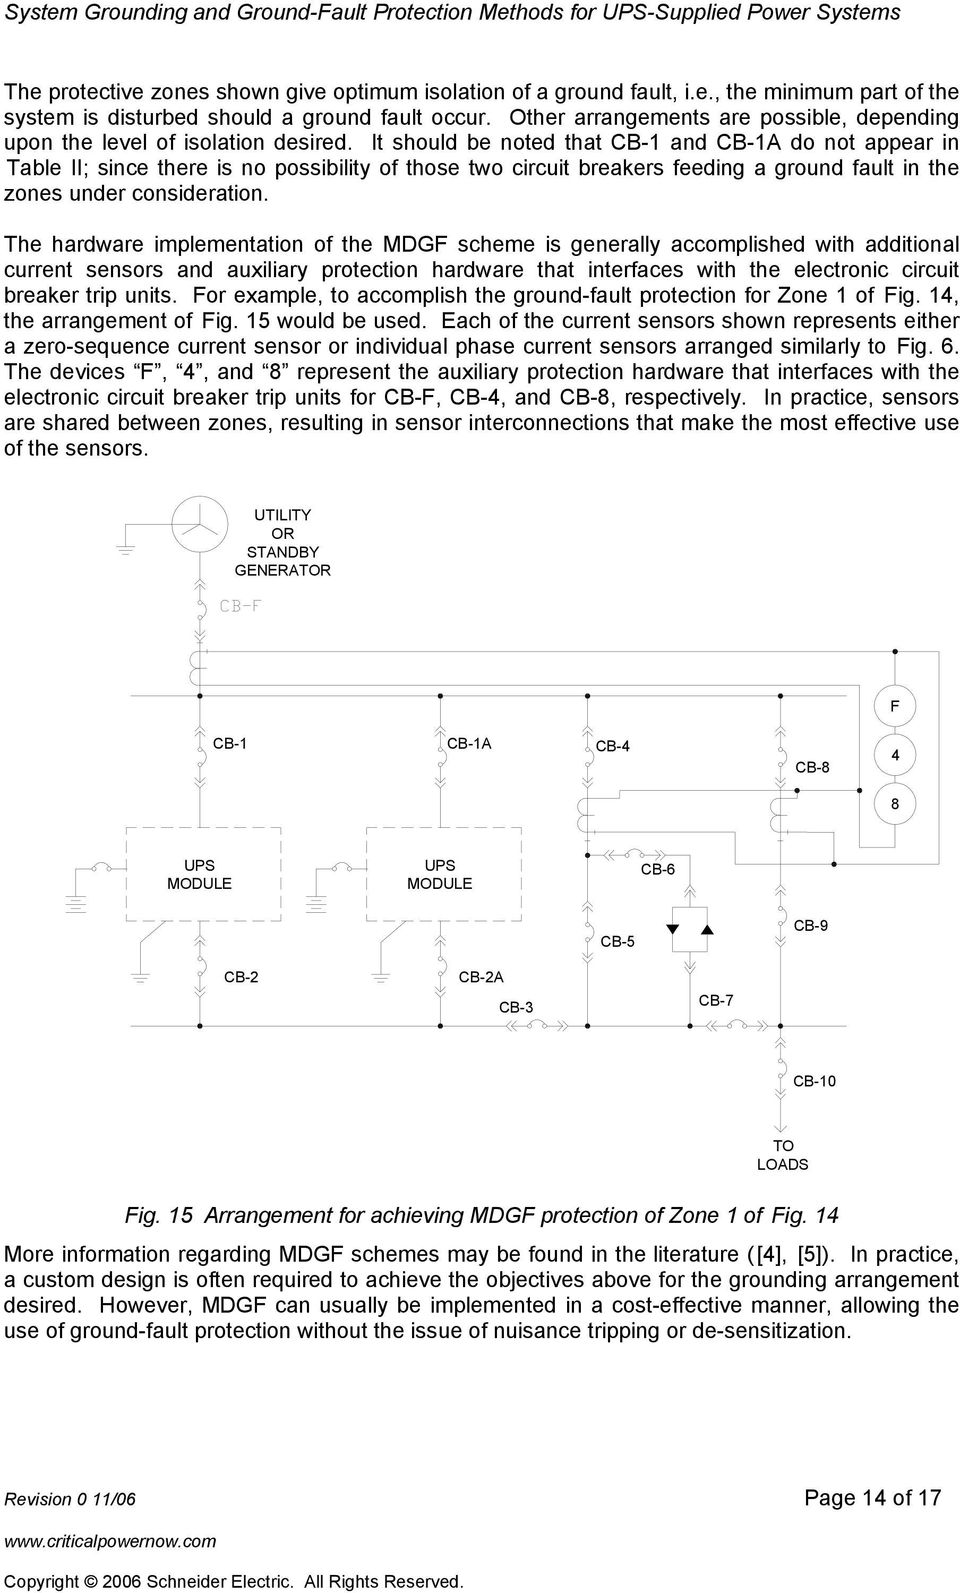 System Grounding And Ground Fault Protection Methods For Ups Electronic Circuit Breaker Diagram Image It Should Be Noted That A Do Not Appear In Table Ii Since There